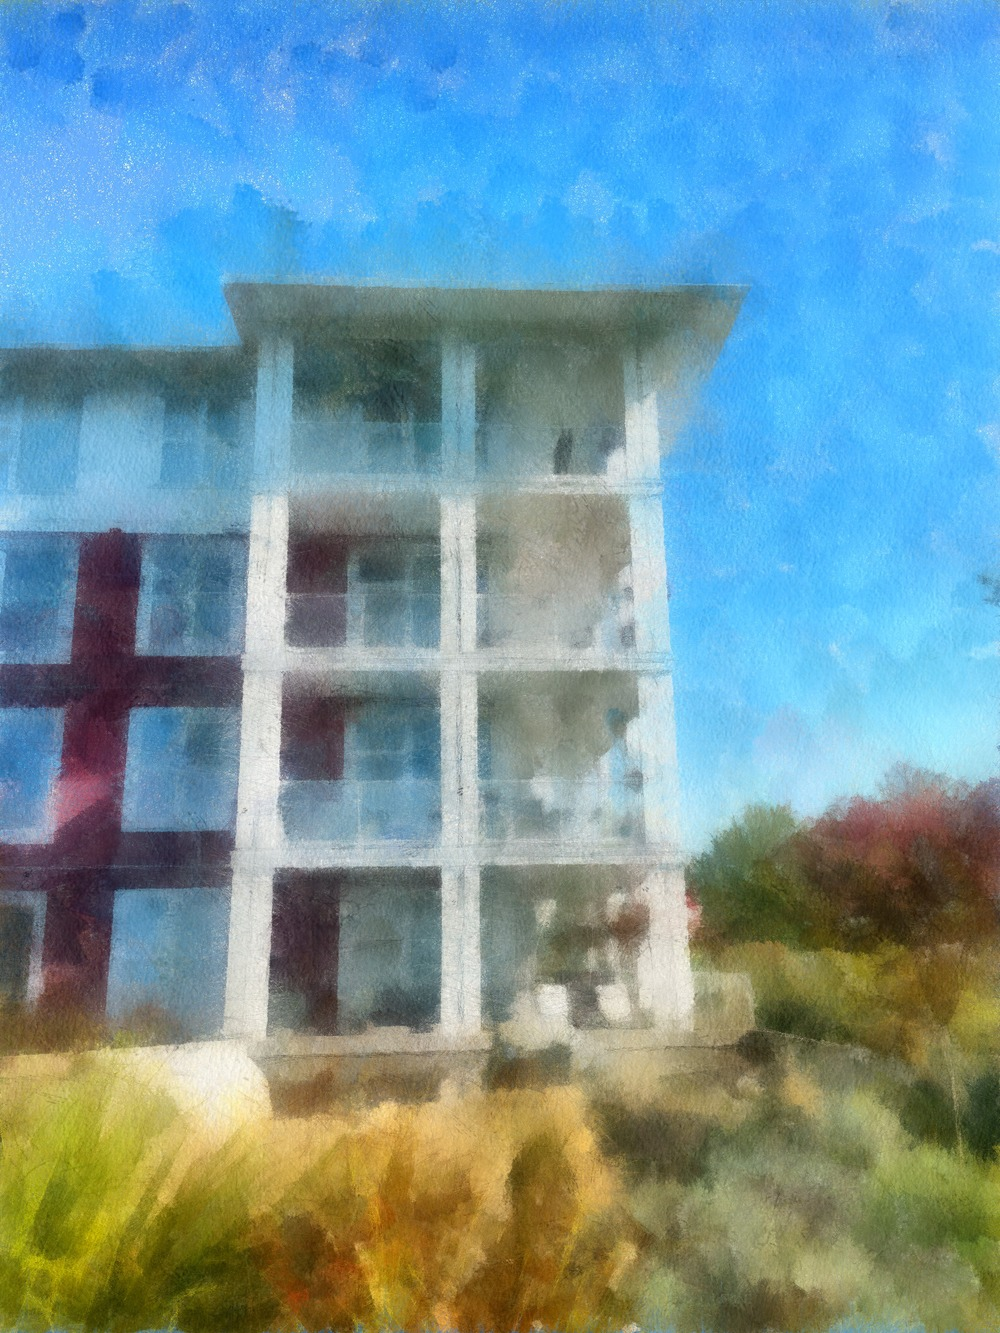 20140915_151335_DAP_Watercolor.jpg